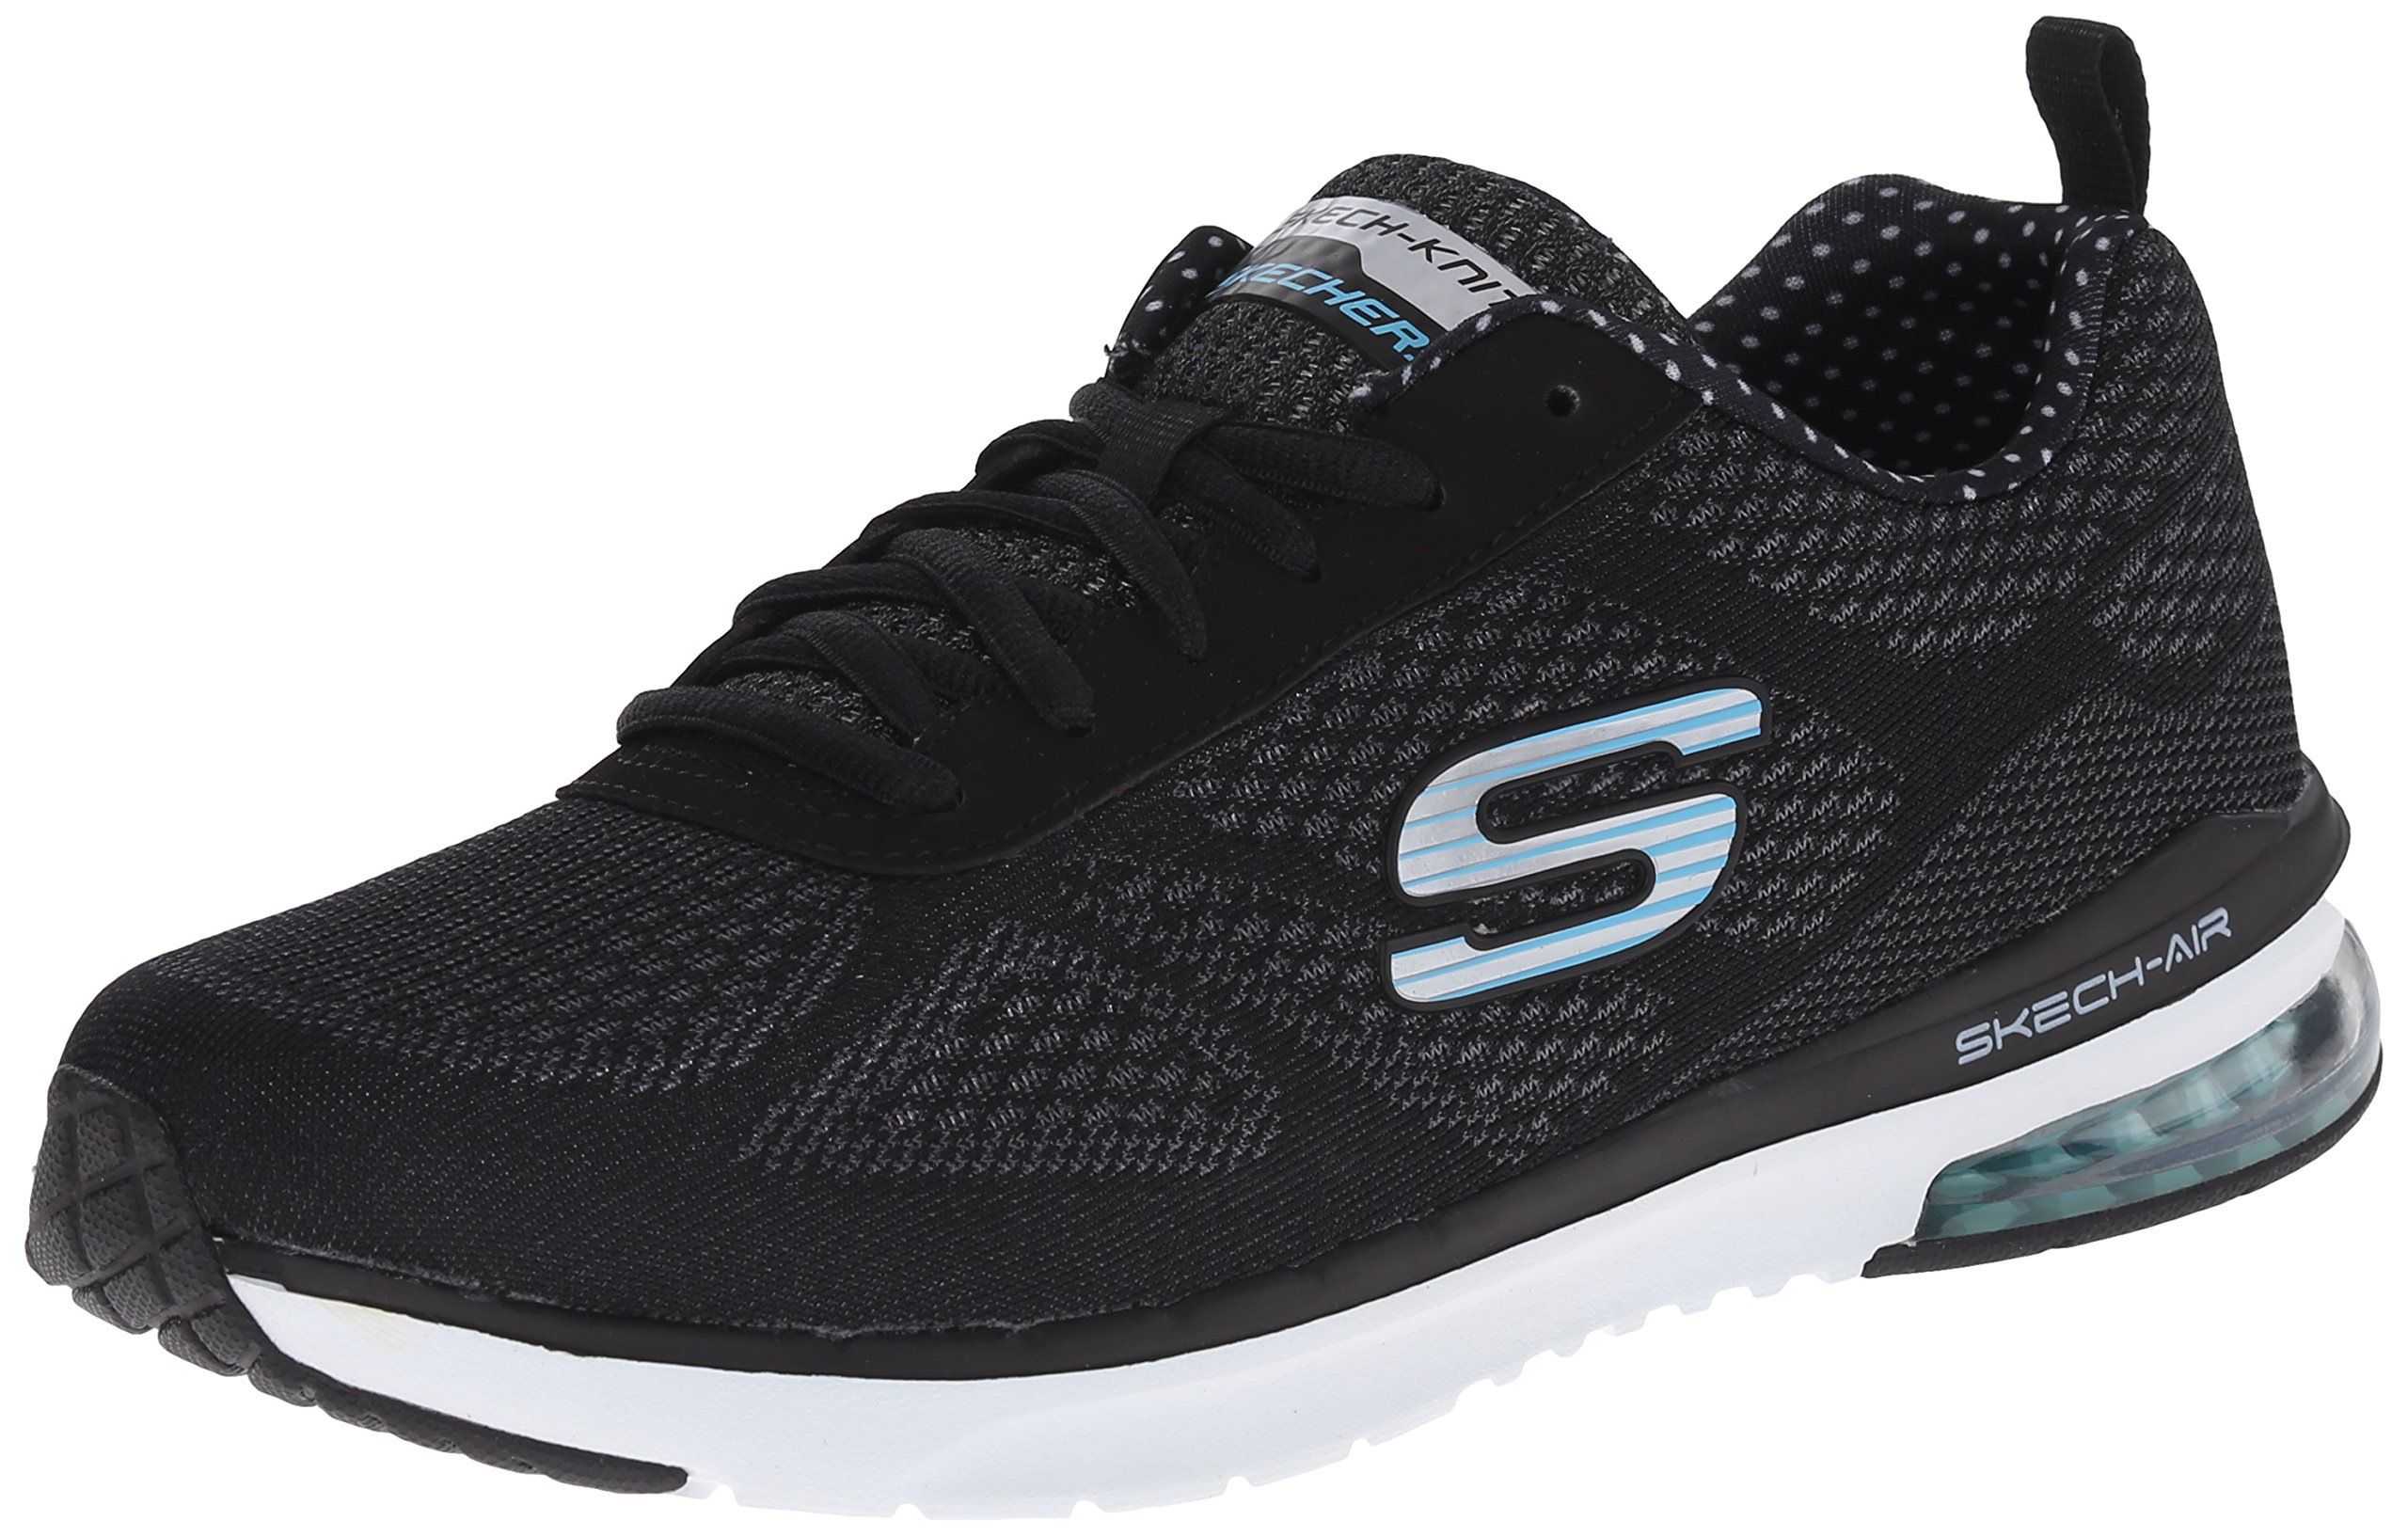 3d55db283e6ac2 Skechers Damen Skech-air Infinity Outdoor Fitnessschuhe product image